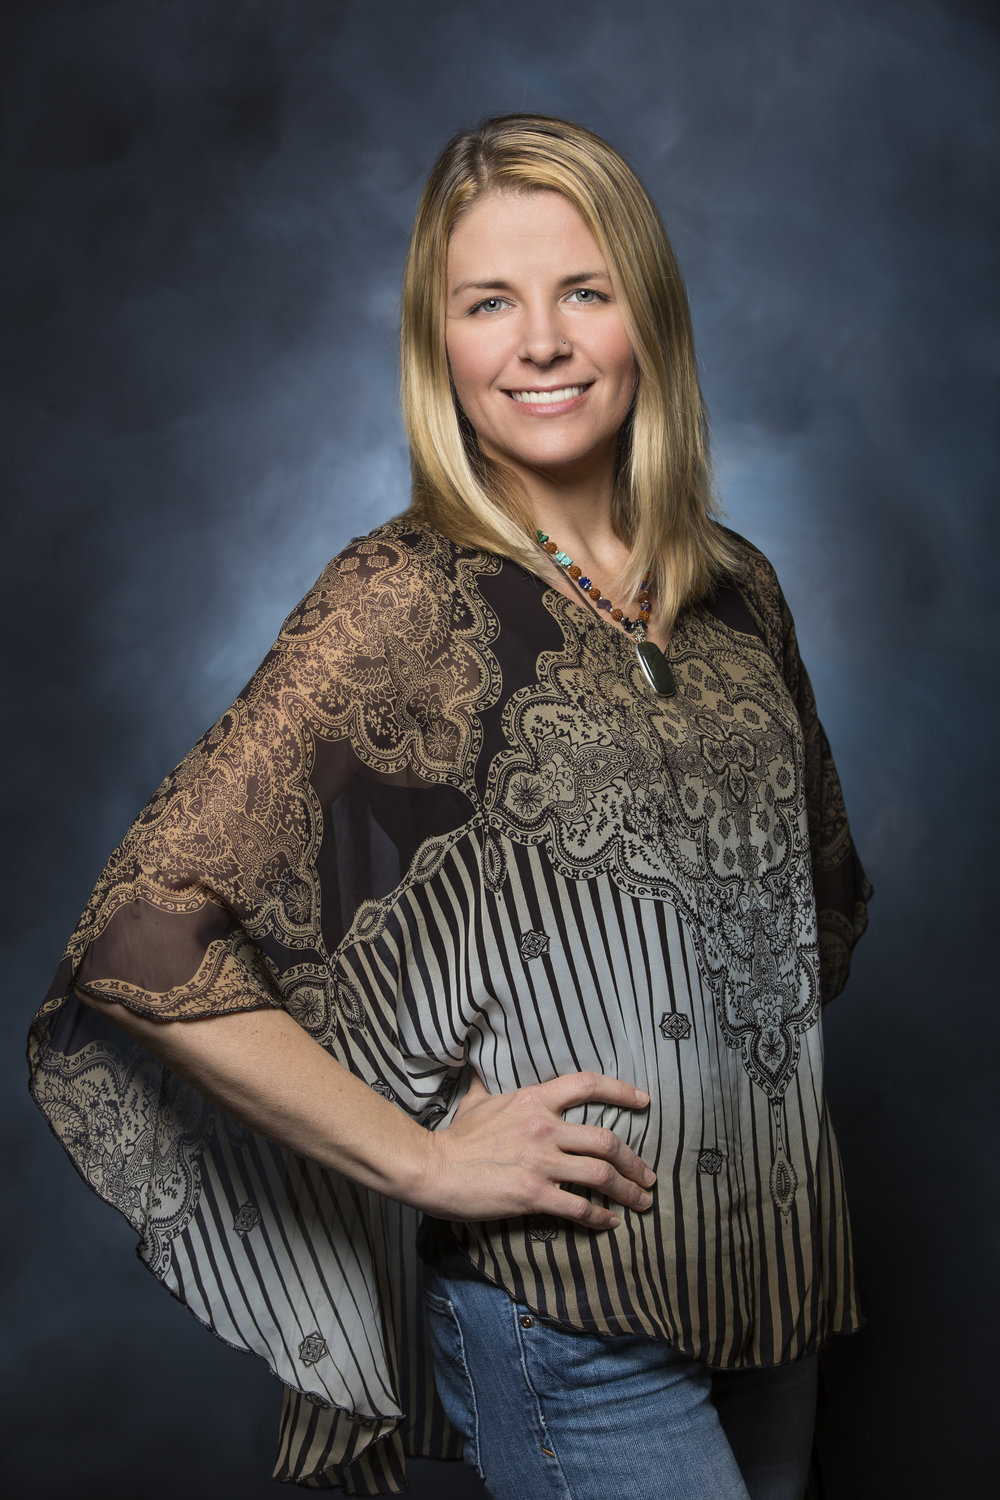 Maureen Hughes, PhD, LMT, CATP, CTT Certified SomaVeda® Thai Advanced Practitioner and Teacher NCBTMB and FSMBT certified courses  Licensed Massage Therapist (Missouri NO. 2014019204)  Certified Yoga Instructor Reiki Master DNM Candidate